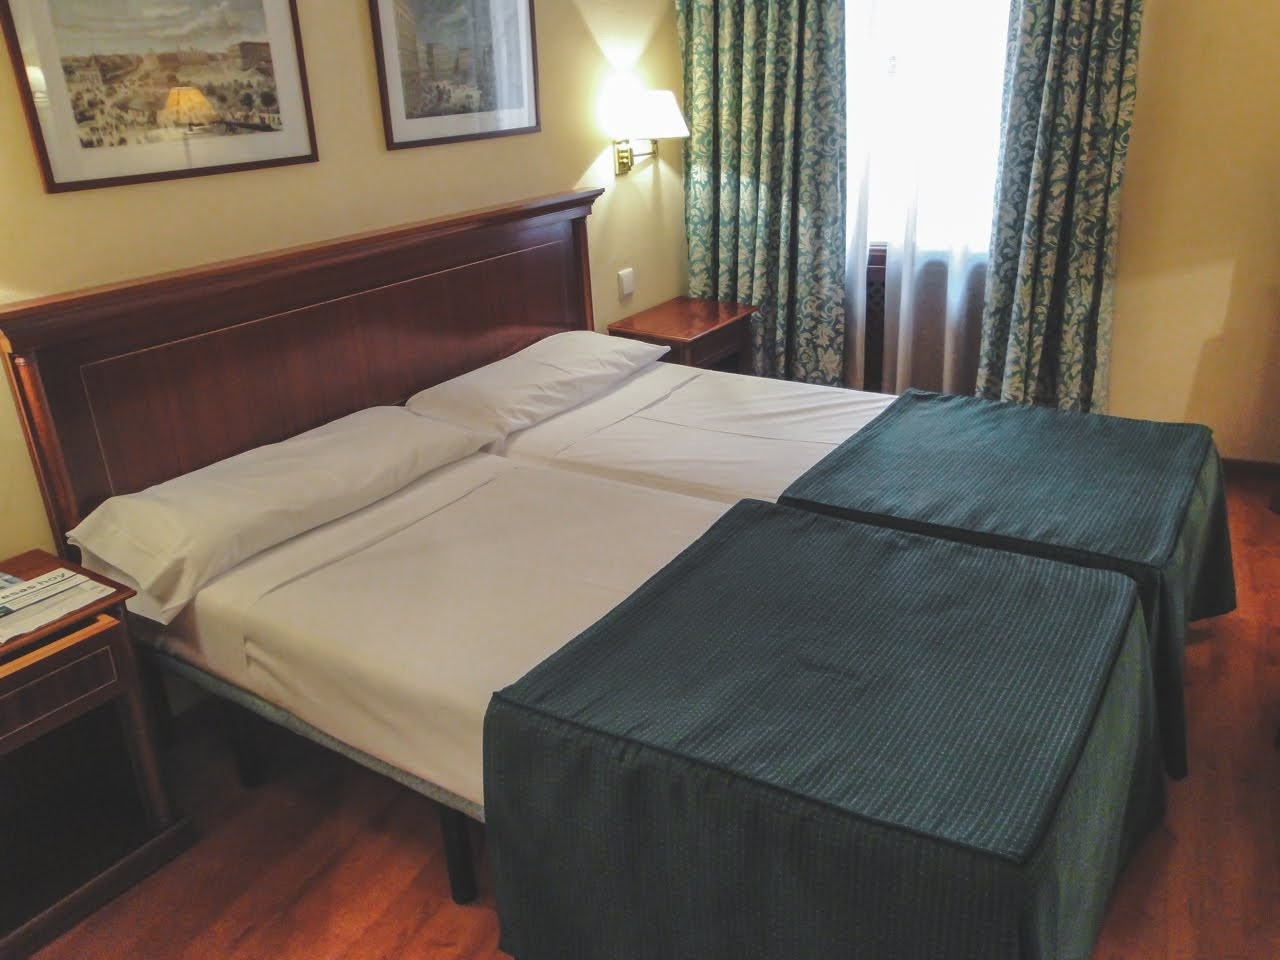 Our hotel room in Madrid Spain, Hotel Tryp Rex, had two small beds without much padding